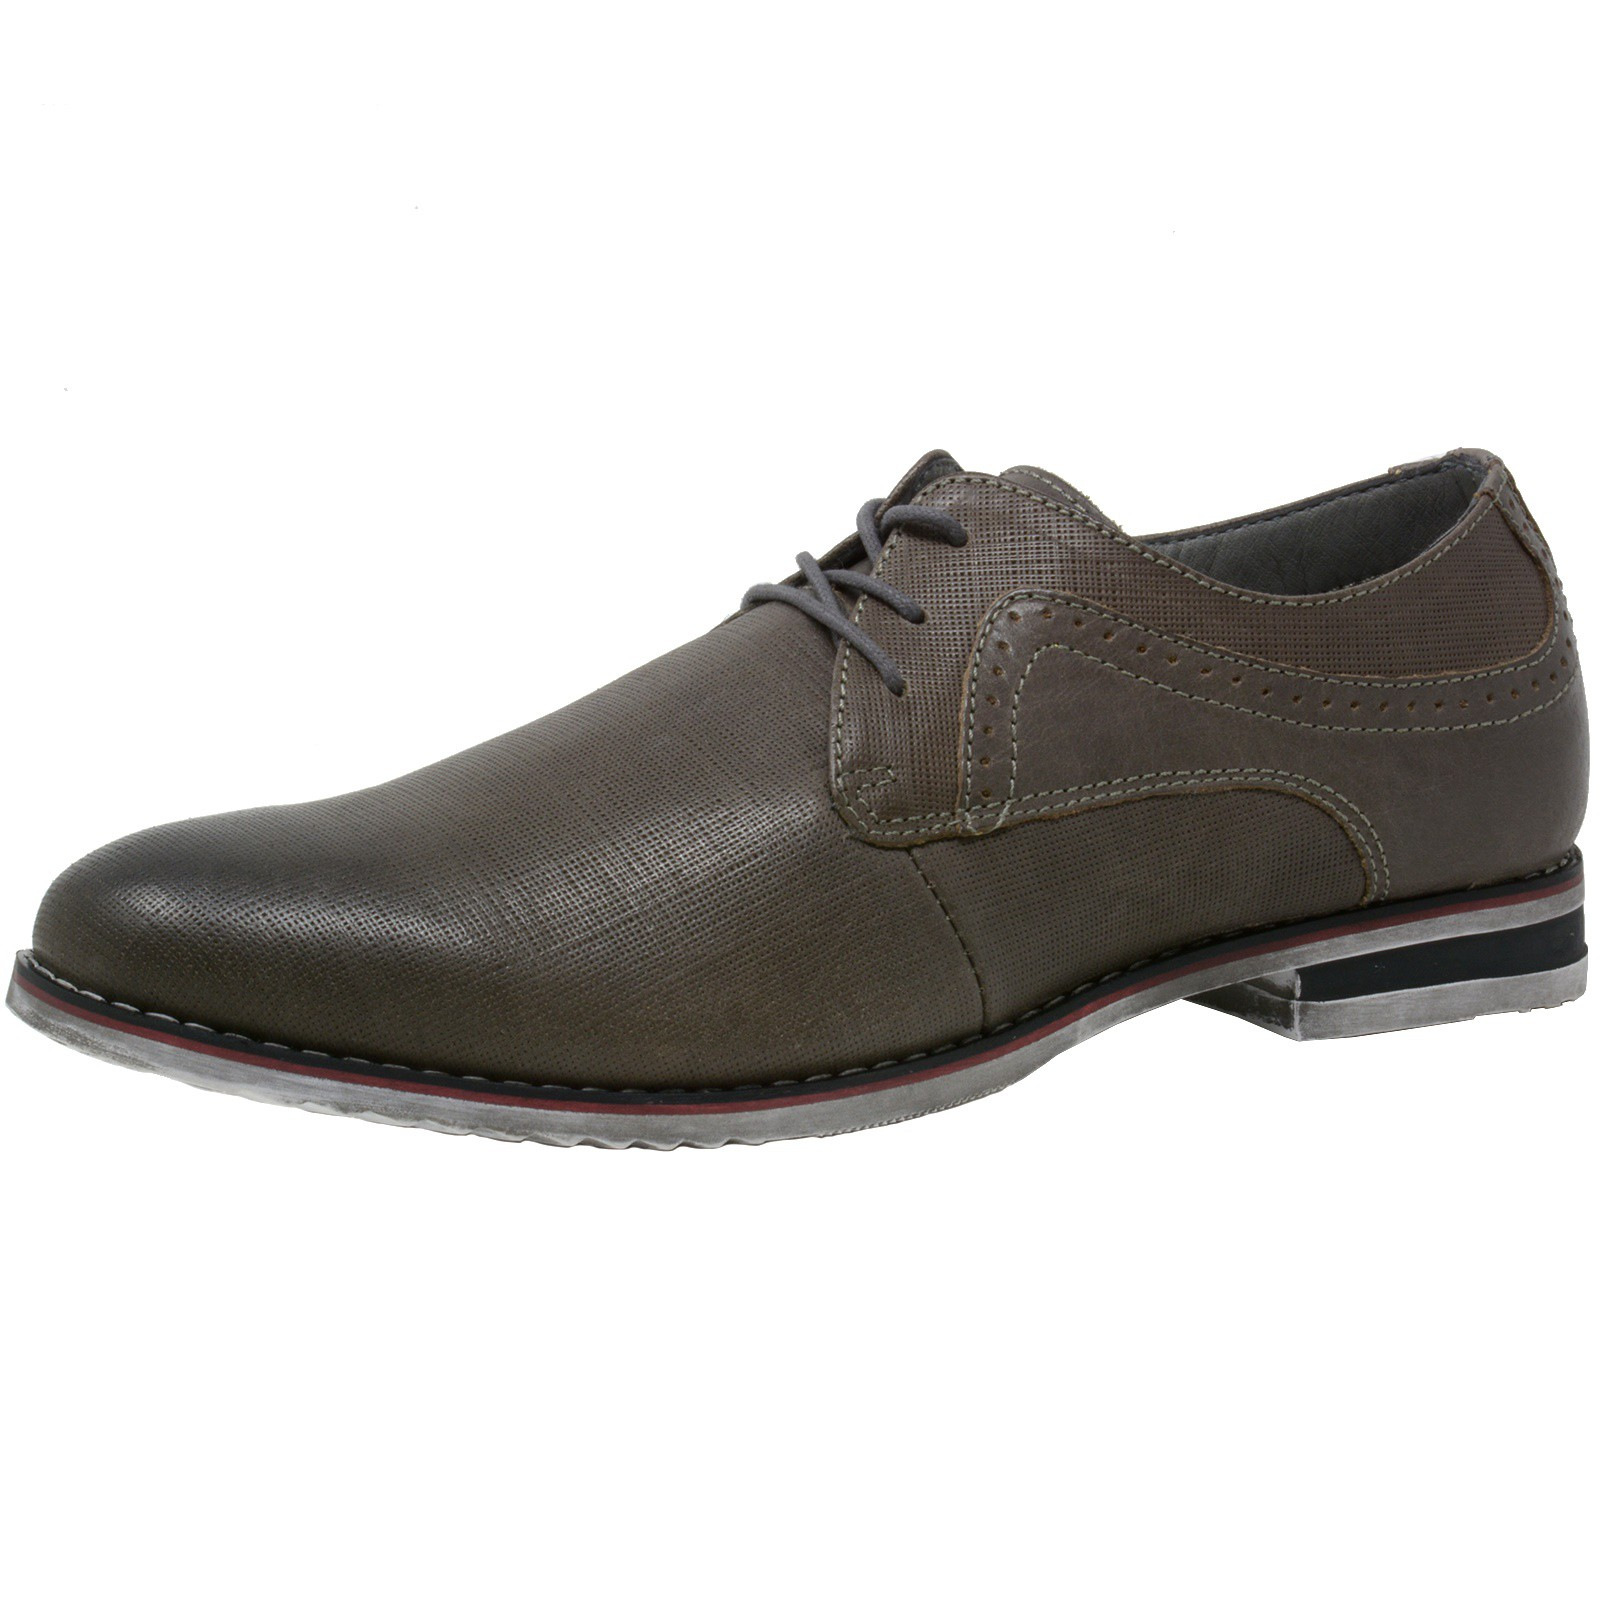 Double-Diamond-by-Alpine-Swiss-Mens-Saffiano-Leather-Lace-Up-Oxford-Dress-Shoes thumbnail 27